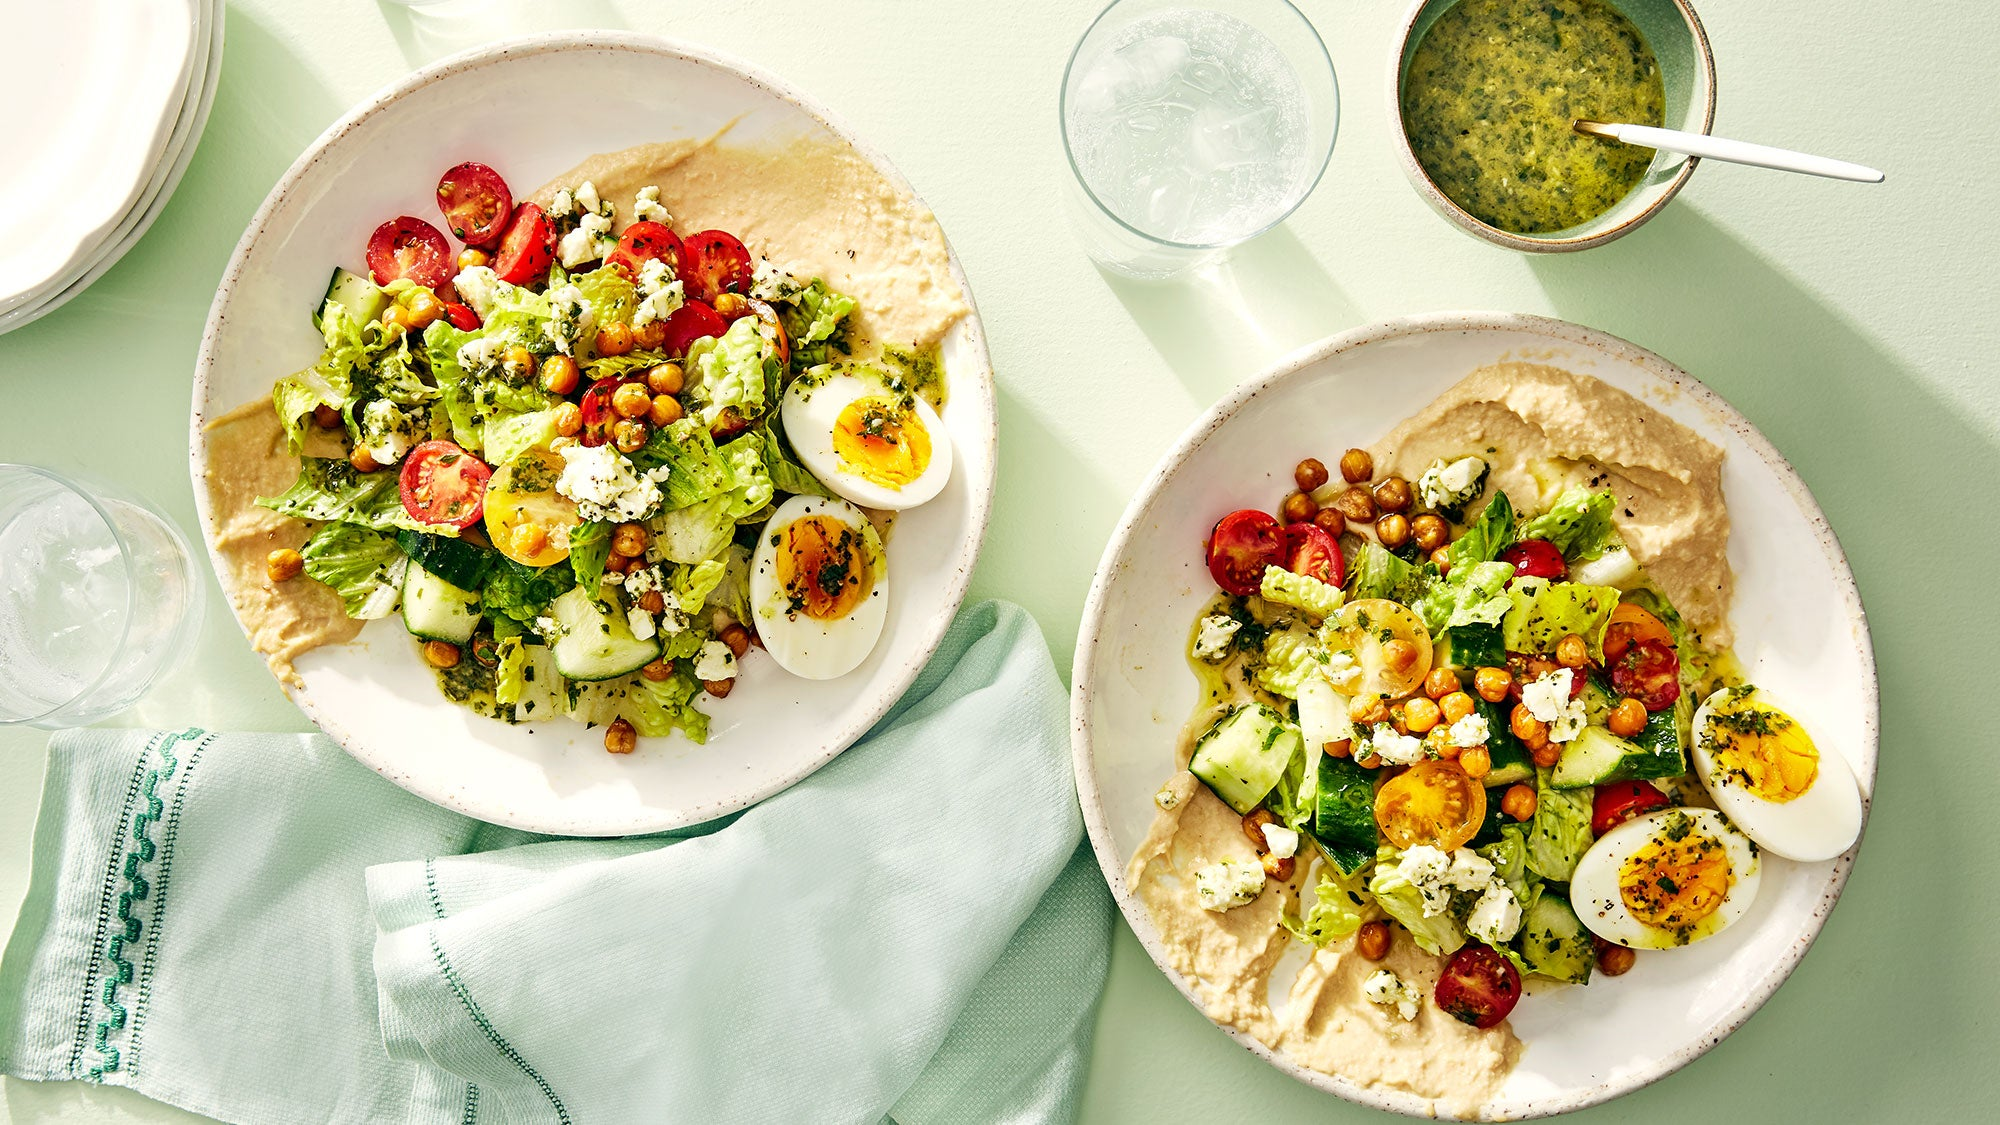 What to Make This Weekend: This Gorgeous Brunch Platter